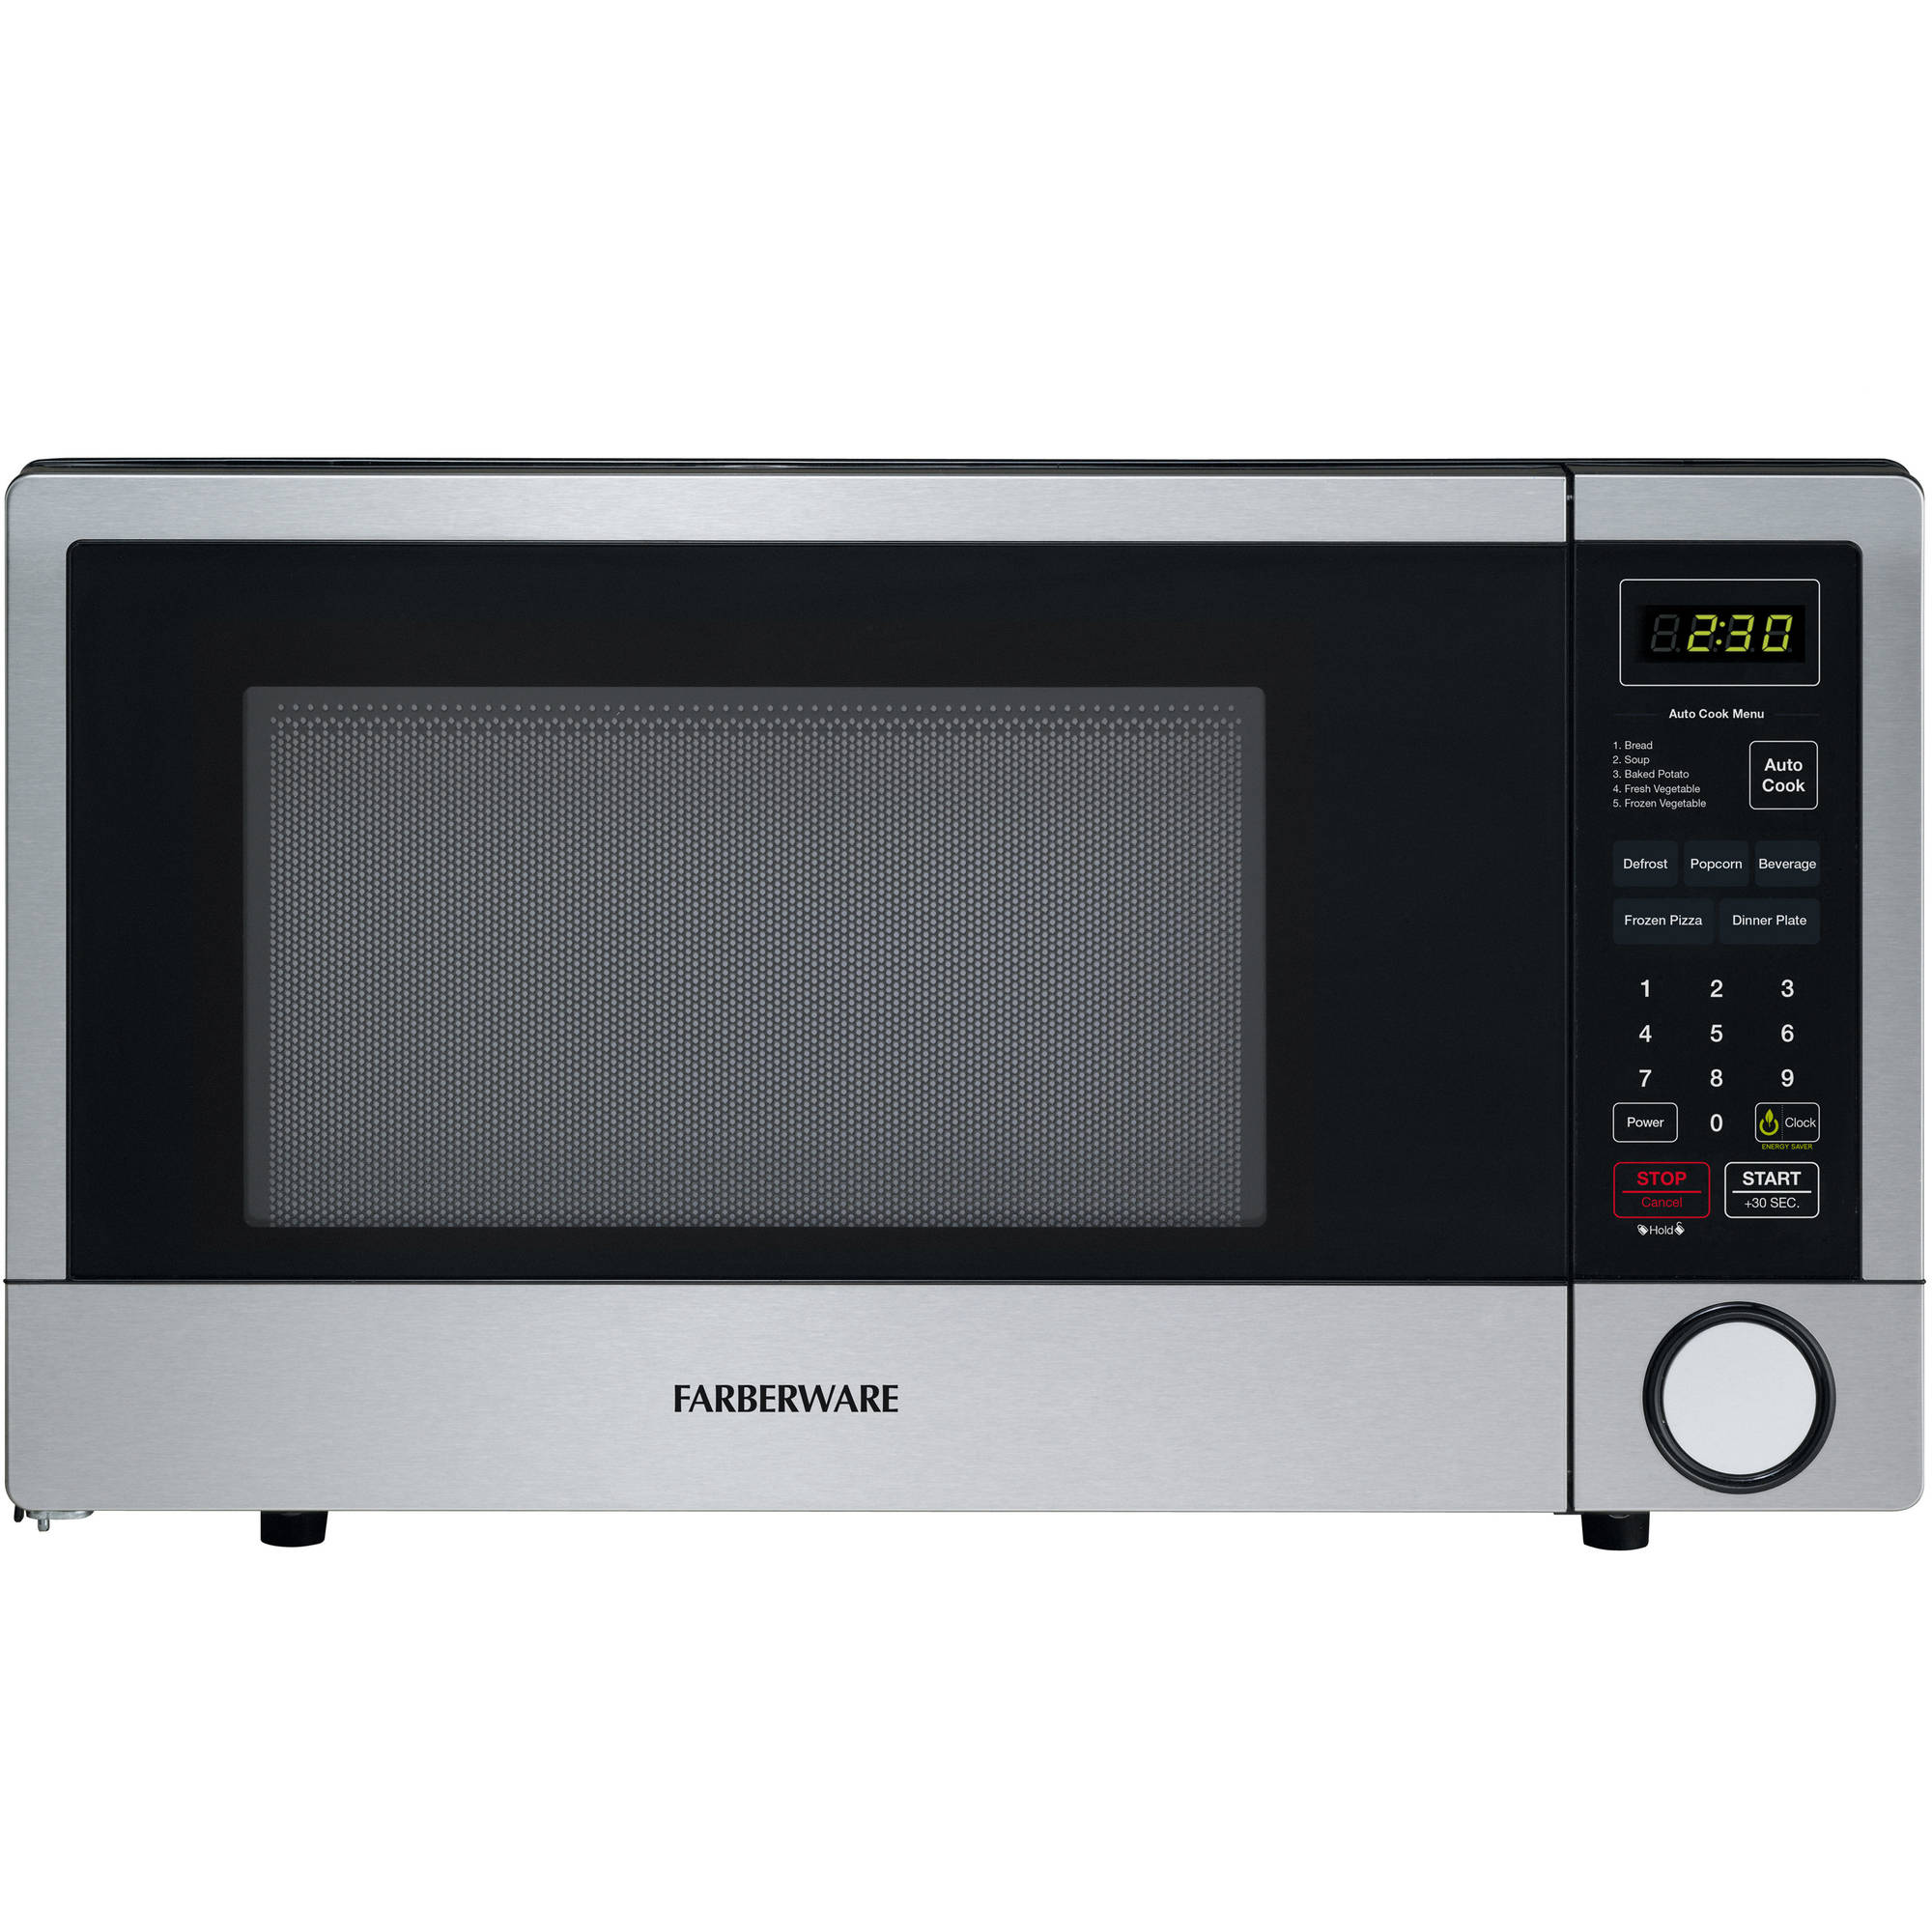 Farberware 1.1 cu ft Stainless Steel 1000-Watt Microwave with CRS Technology